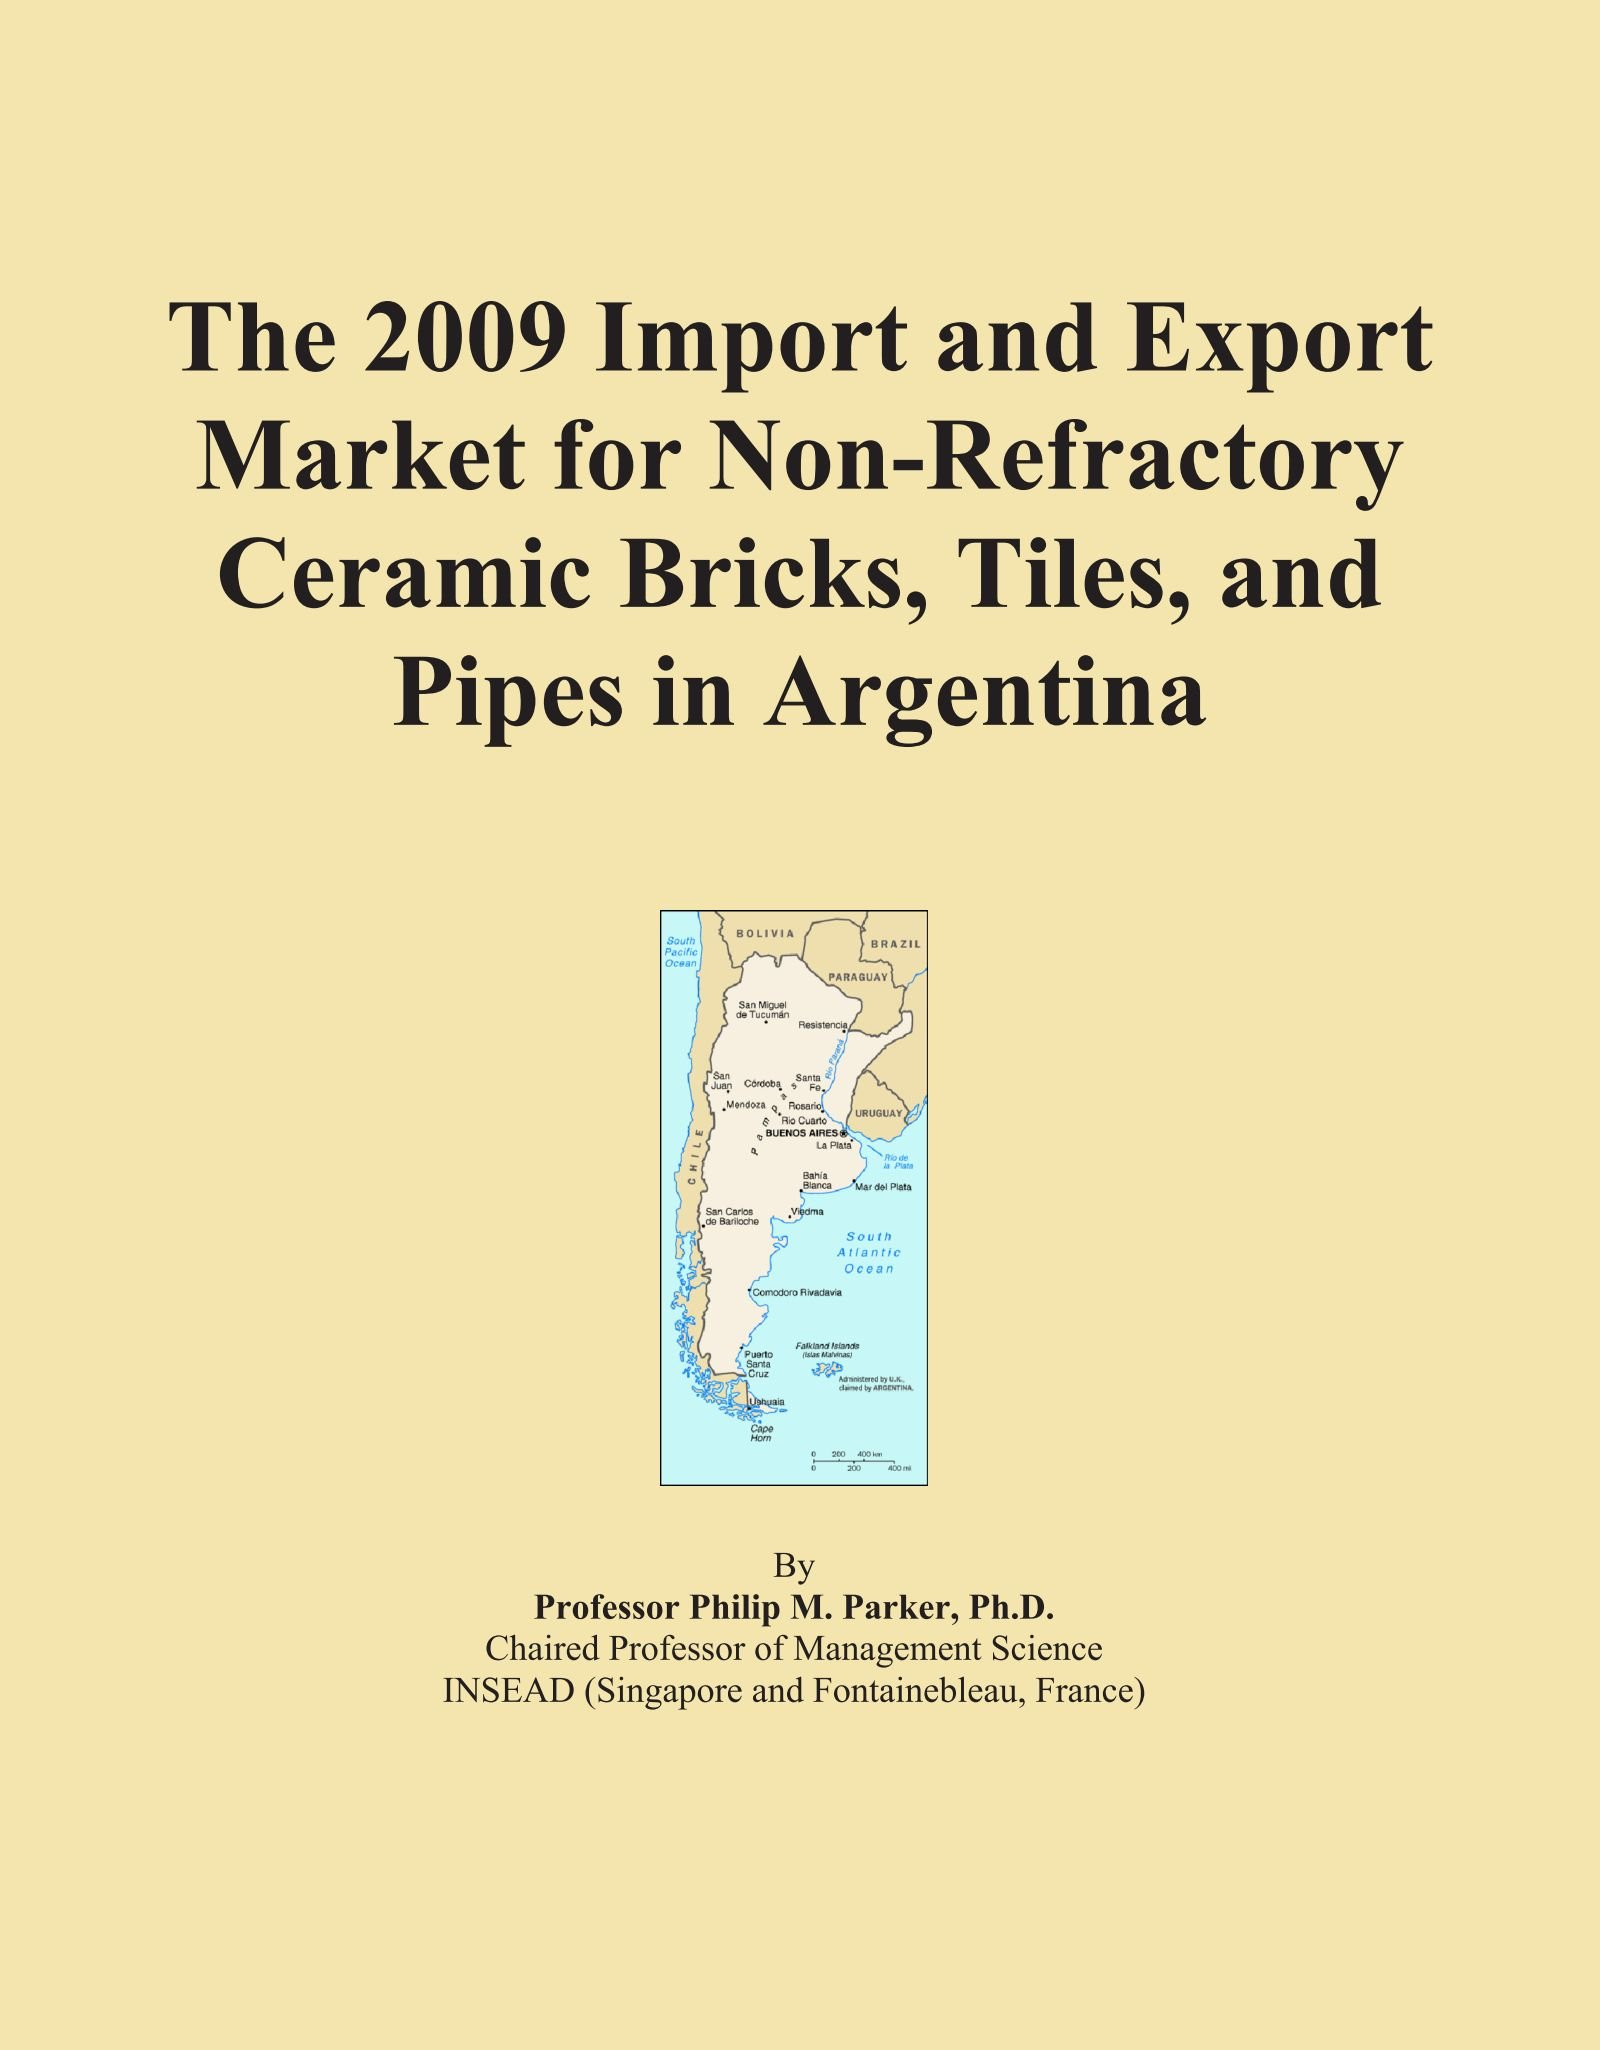 The 2009 Import and Export Market for Non-Refractory Ceramic Bricks ...